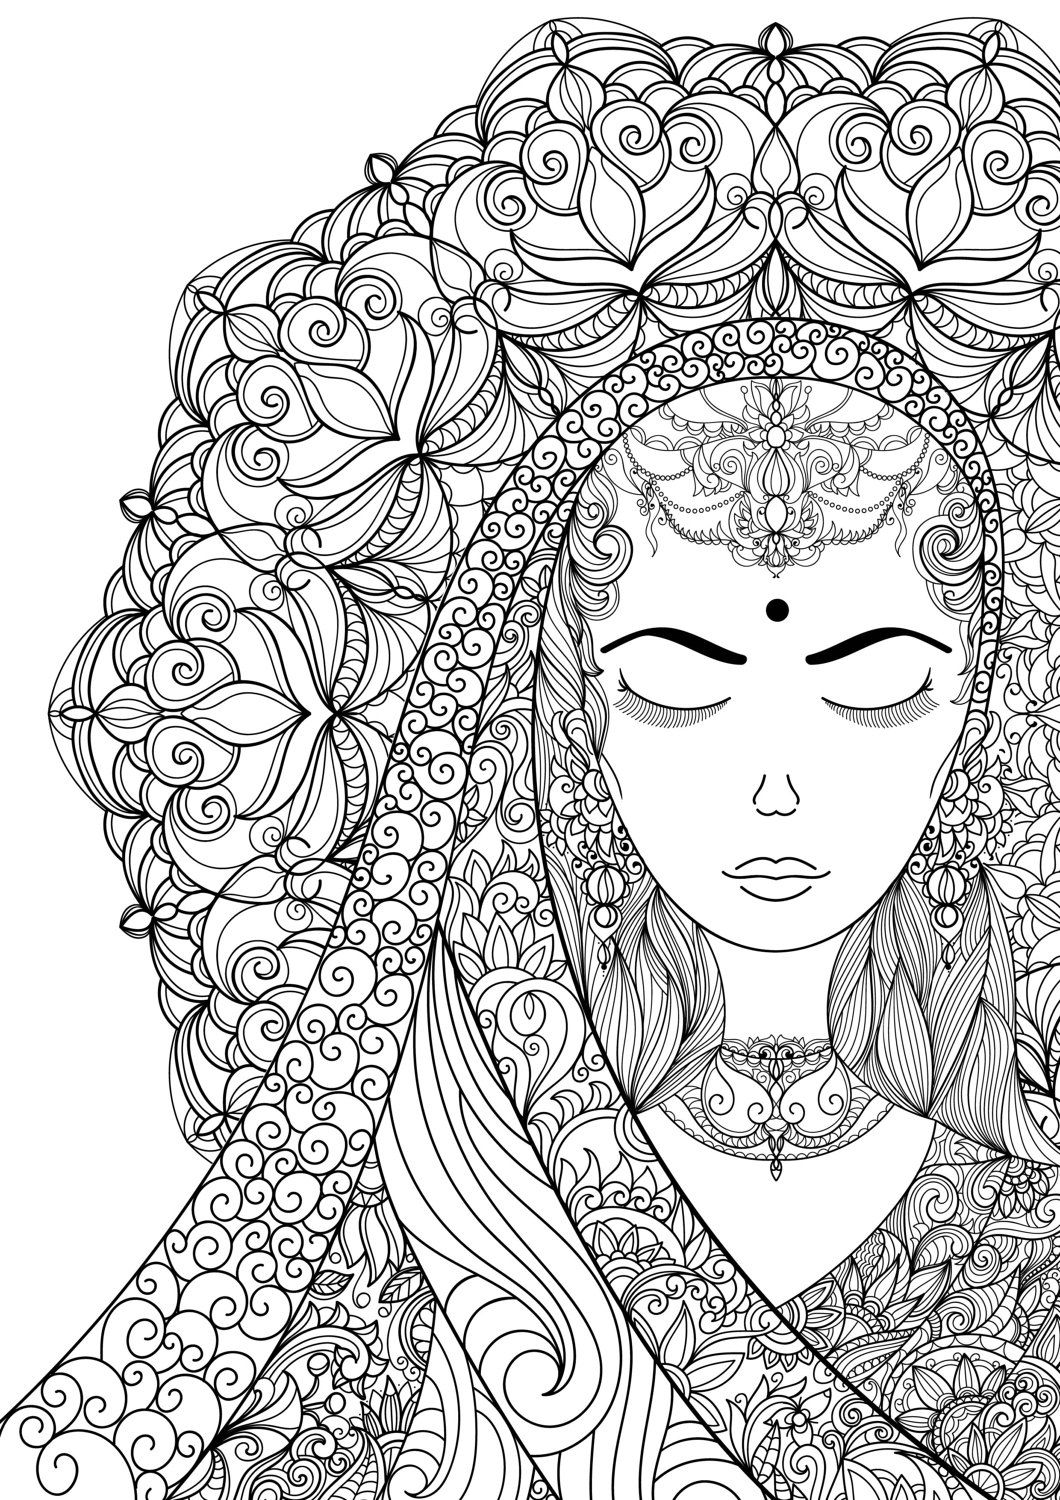 The 25 Best Blank Coloring Pages Ideas On Pinterest